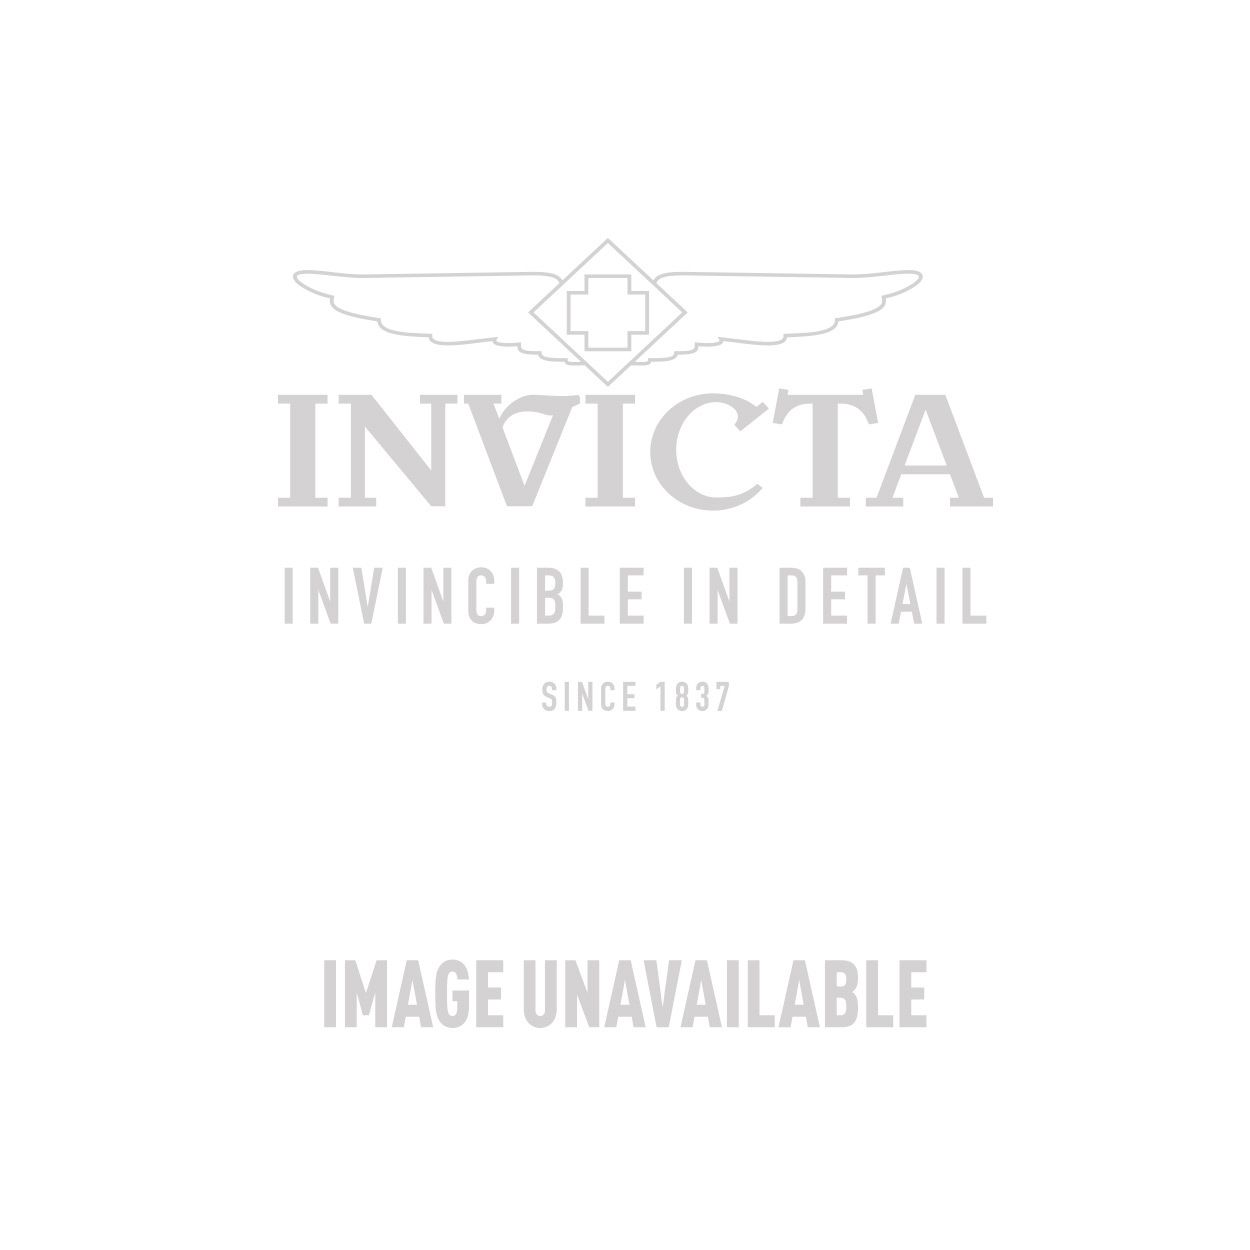 Invicta Sea Hunter Swiss Made Quartz Watch - Black, Stainless Steel case with Steel, Black tone Stainless Steel band - Model 11161